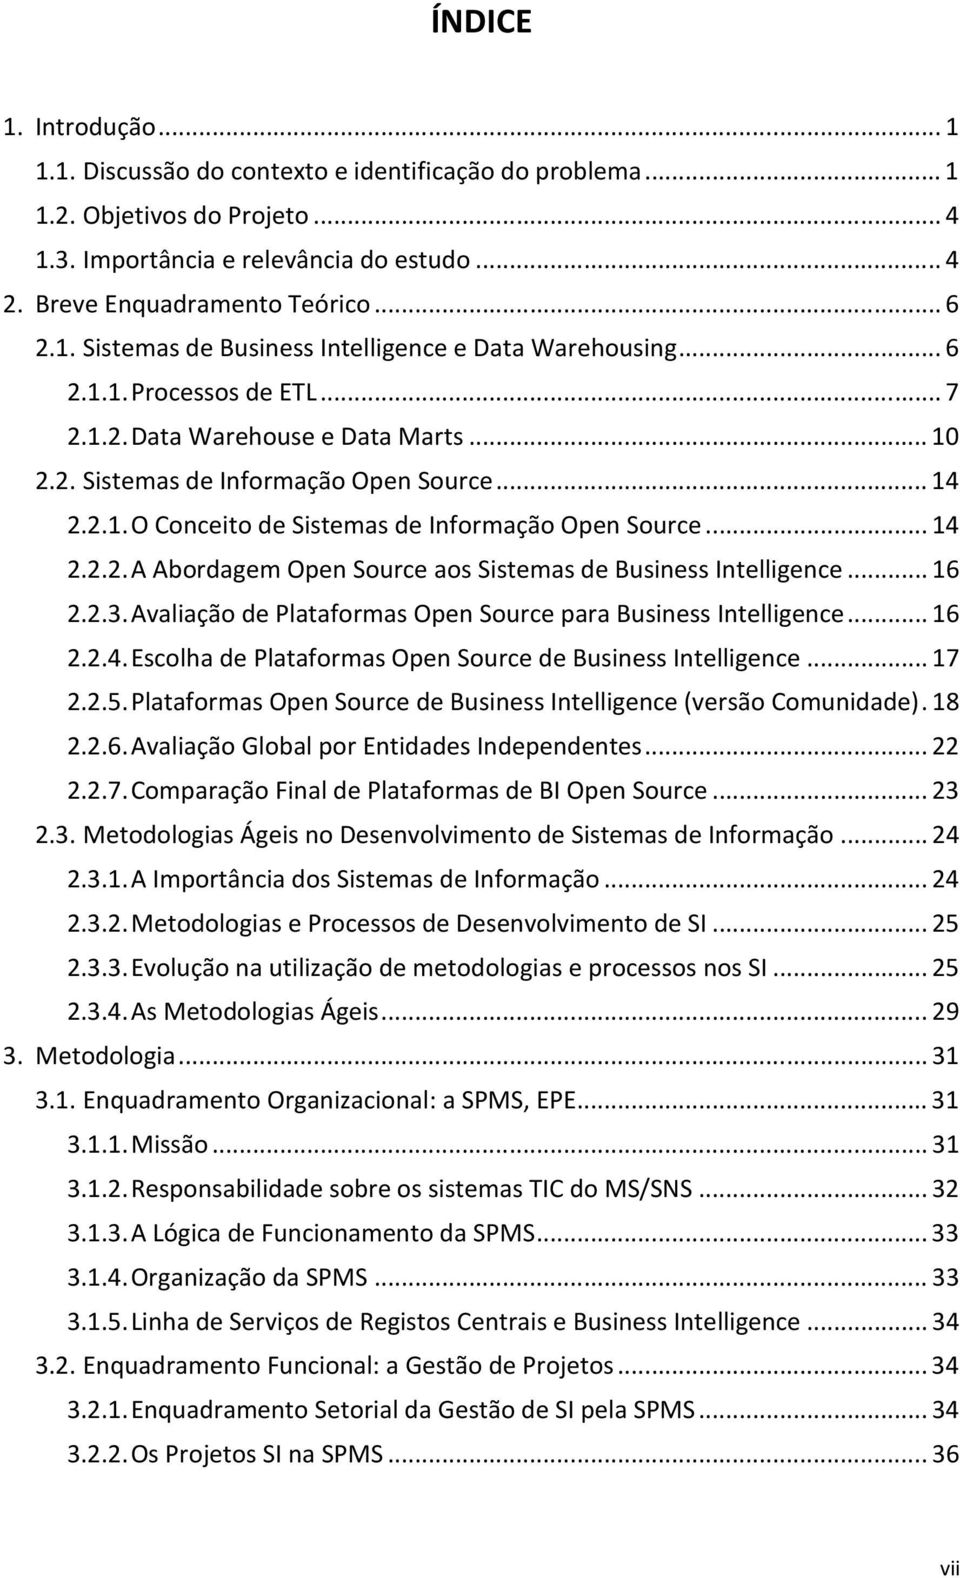 .. 14 2.2.2. A Abordagem Open Source aos Sistemas de Business Intelligence... 16 2.2.3. Avaliação de Plataformas Open Source para Business Intelligence... 16 2.2.4. Escolha de Plataformas Open Source de Business Intelligence.